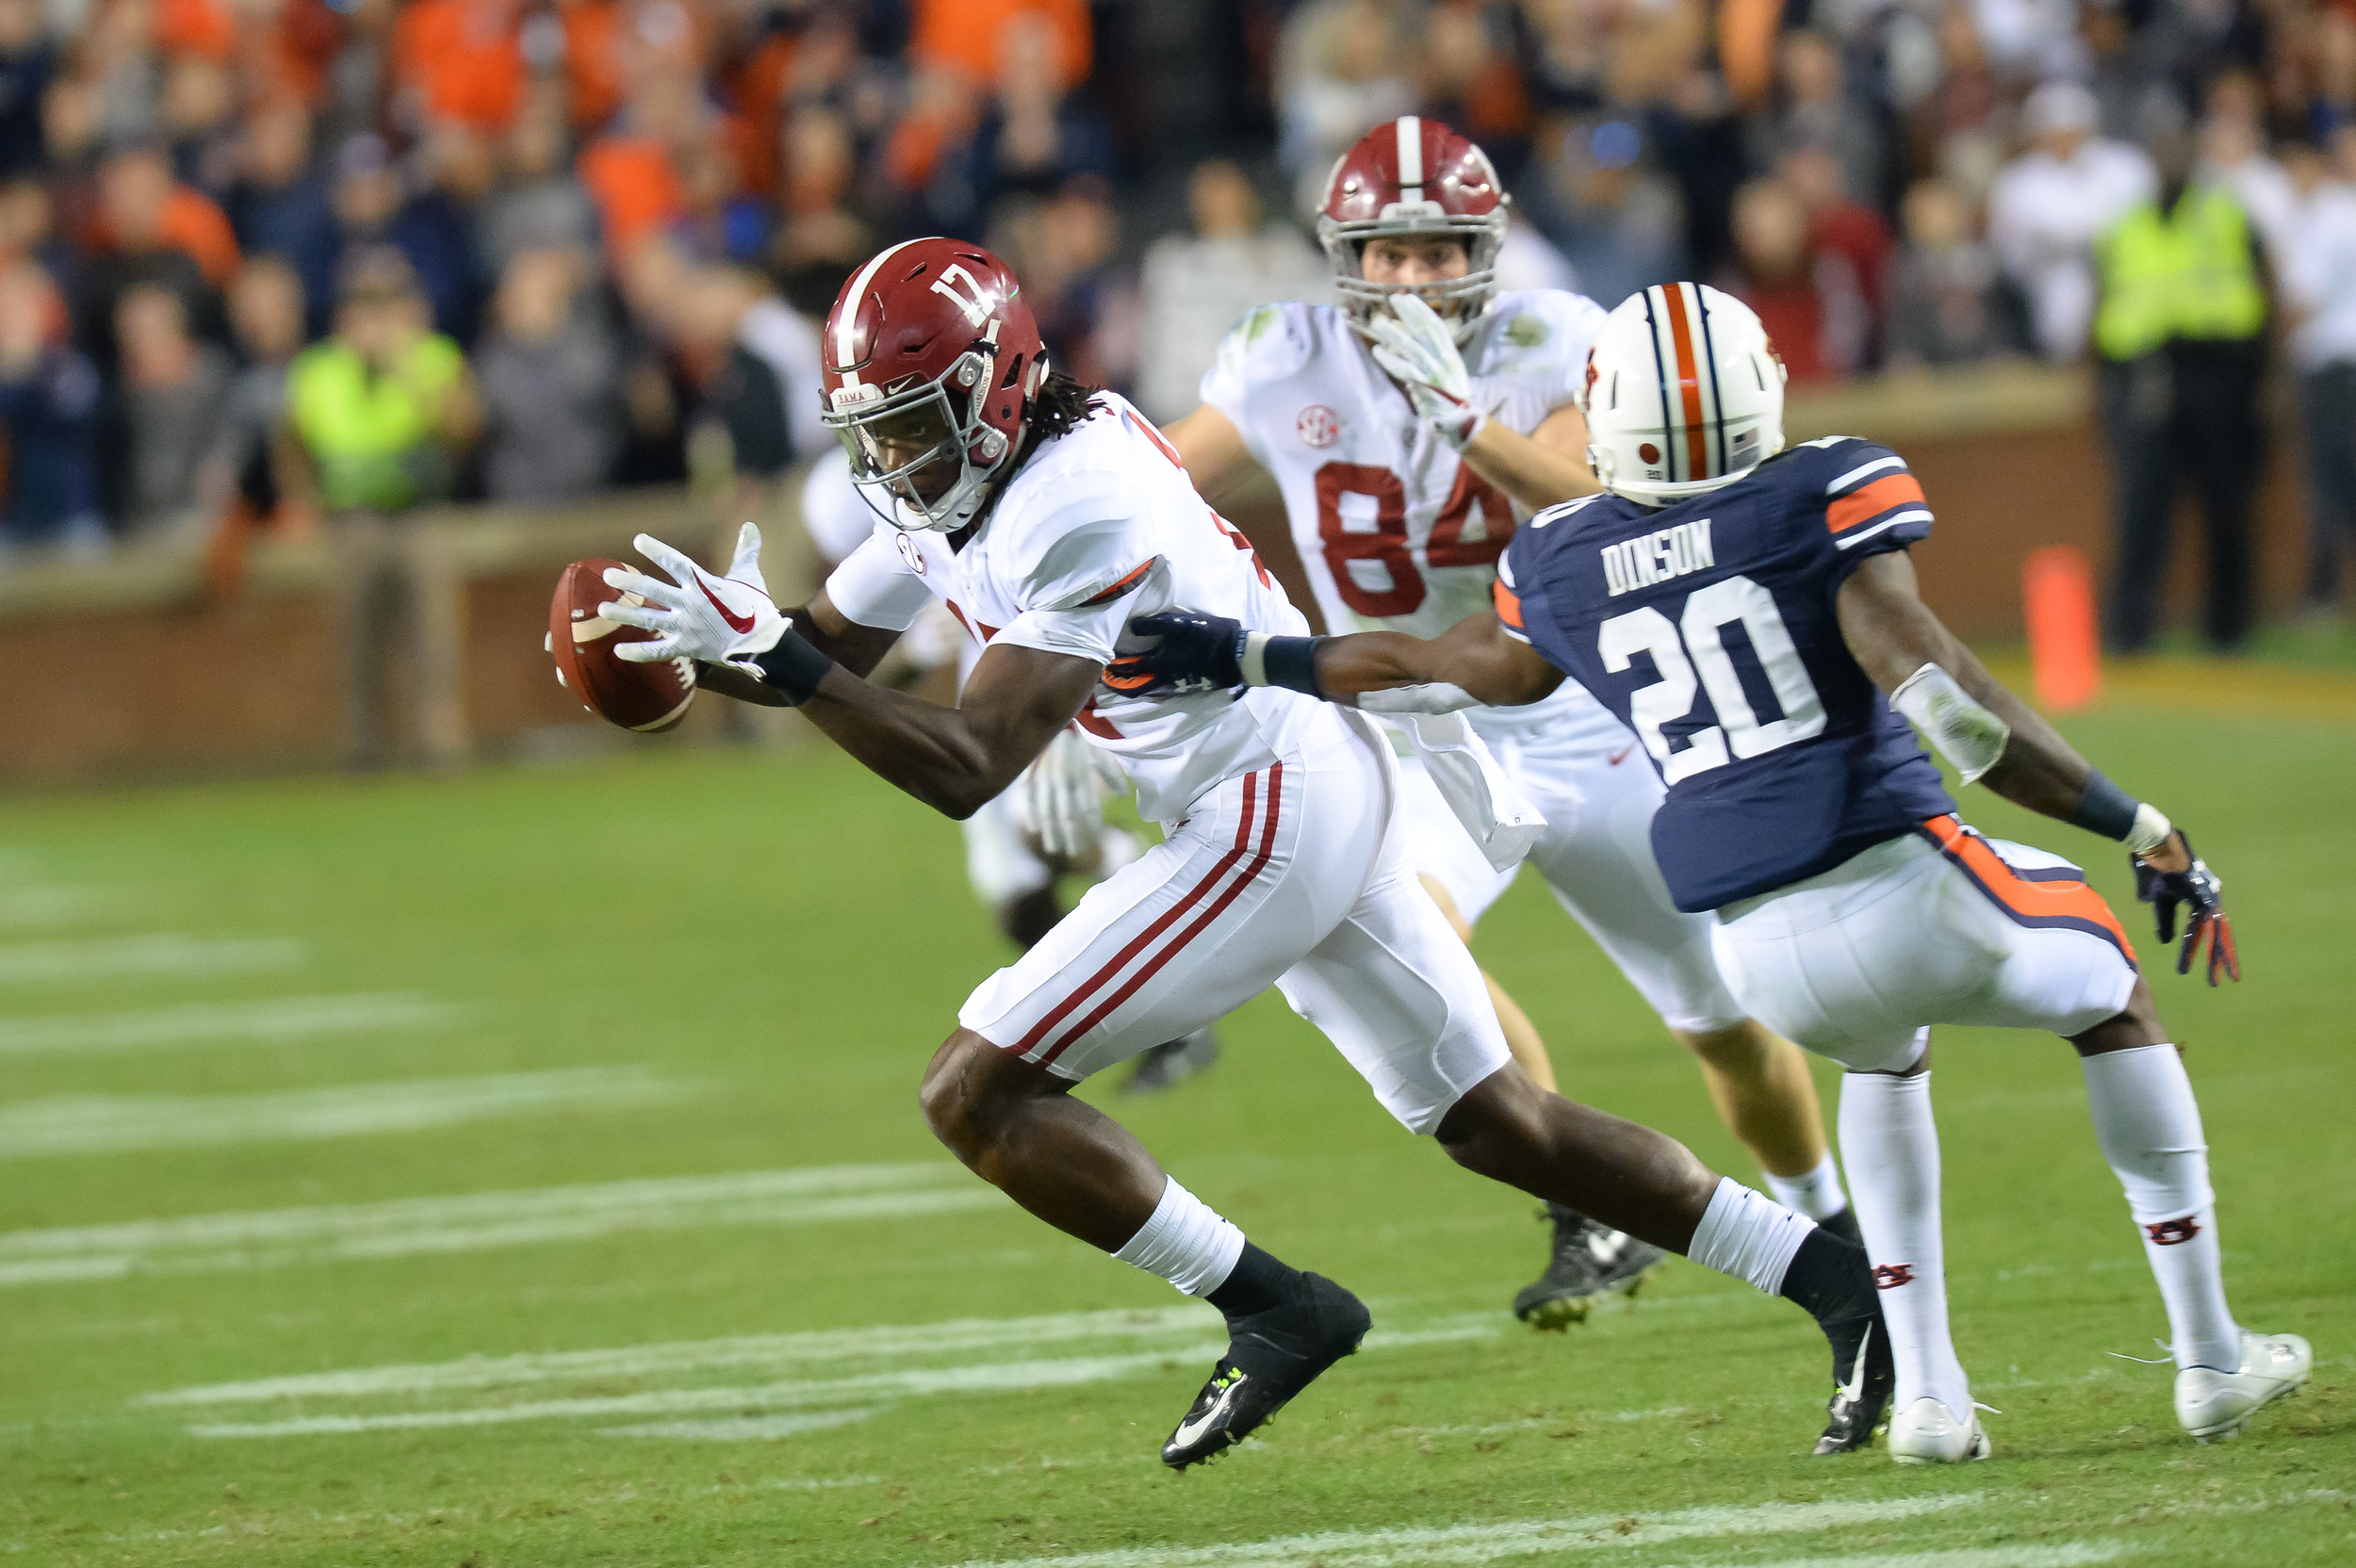 Alabama Crimson Tide wide receiver Cam Sims (17) runs past Auburn Tigers defensive back Jeremiah Dinson (20) on the final play of Saturday's game, at Jordan-Hare Stadium.